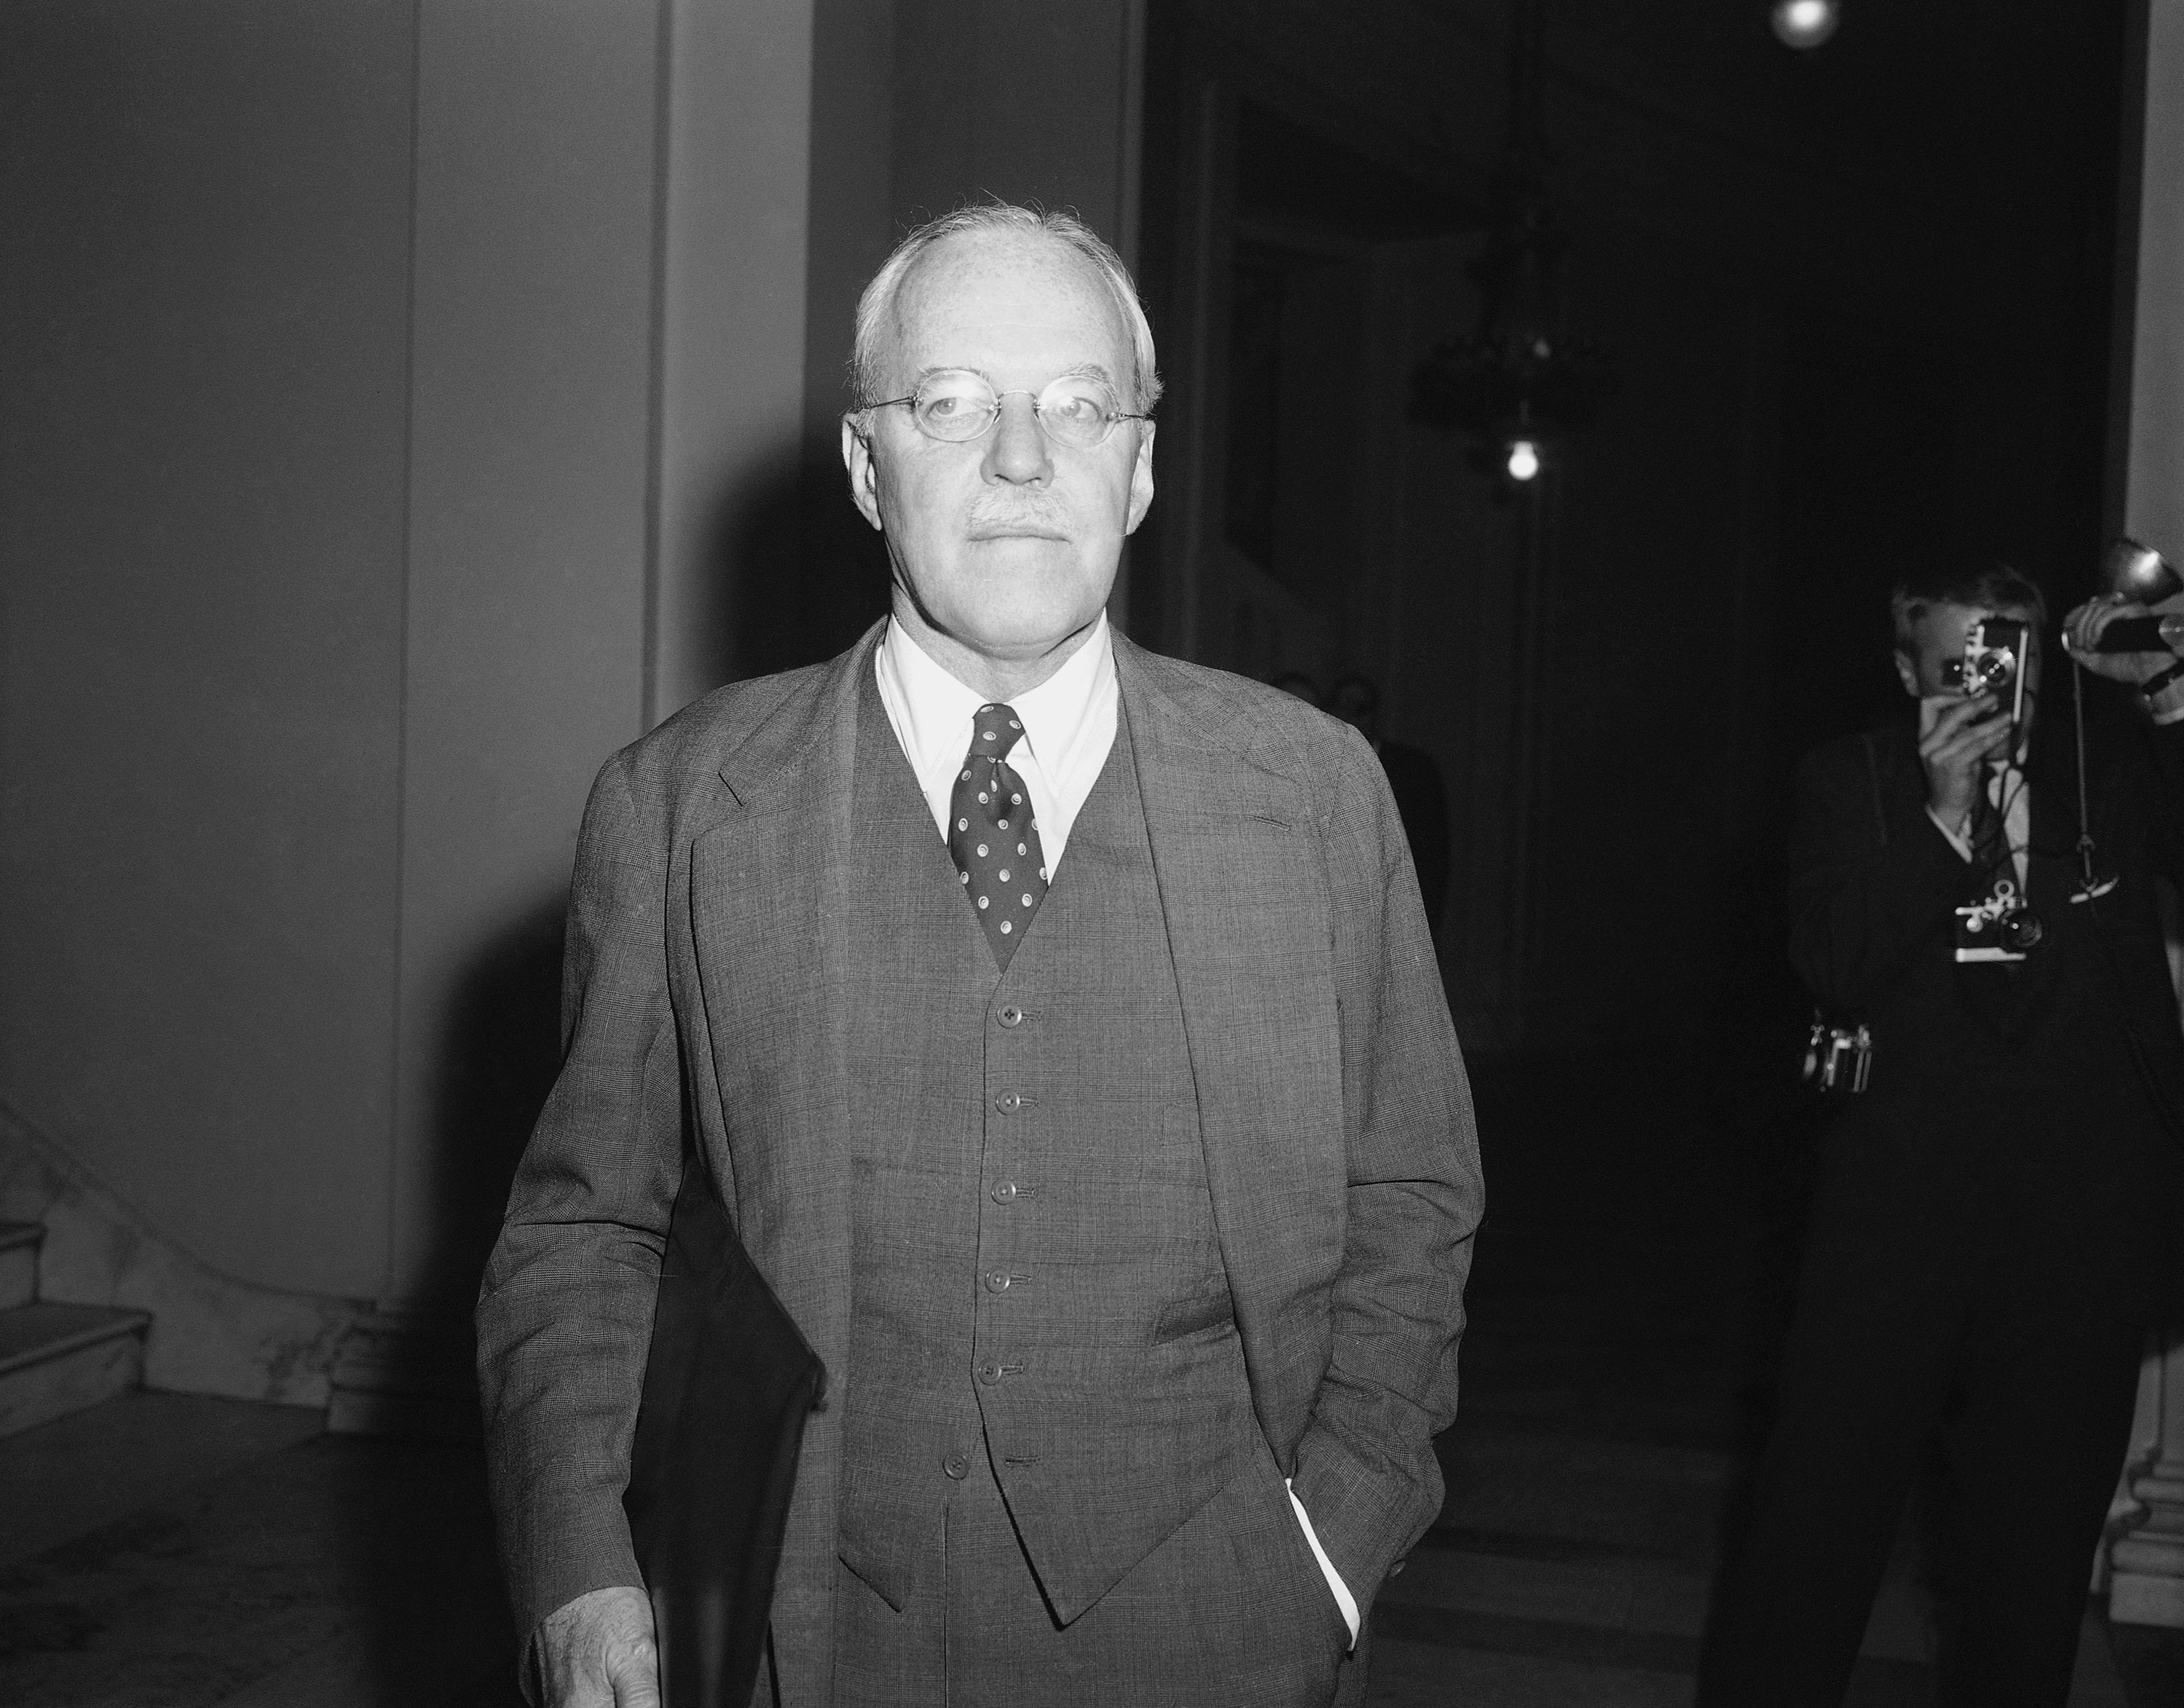 Allen Dulles, director of the Central Intelligence Agency, leaves the hearing room on Nov. 27, 1957, after giving closed door testimony before the senated preparedness subcommittee. Dulles told what Sen. Stuart Symington (D-Mo) called a sad and shocking story of the missile competition with Soviet Russia.